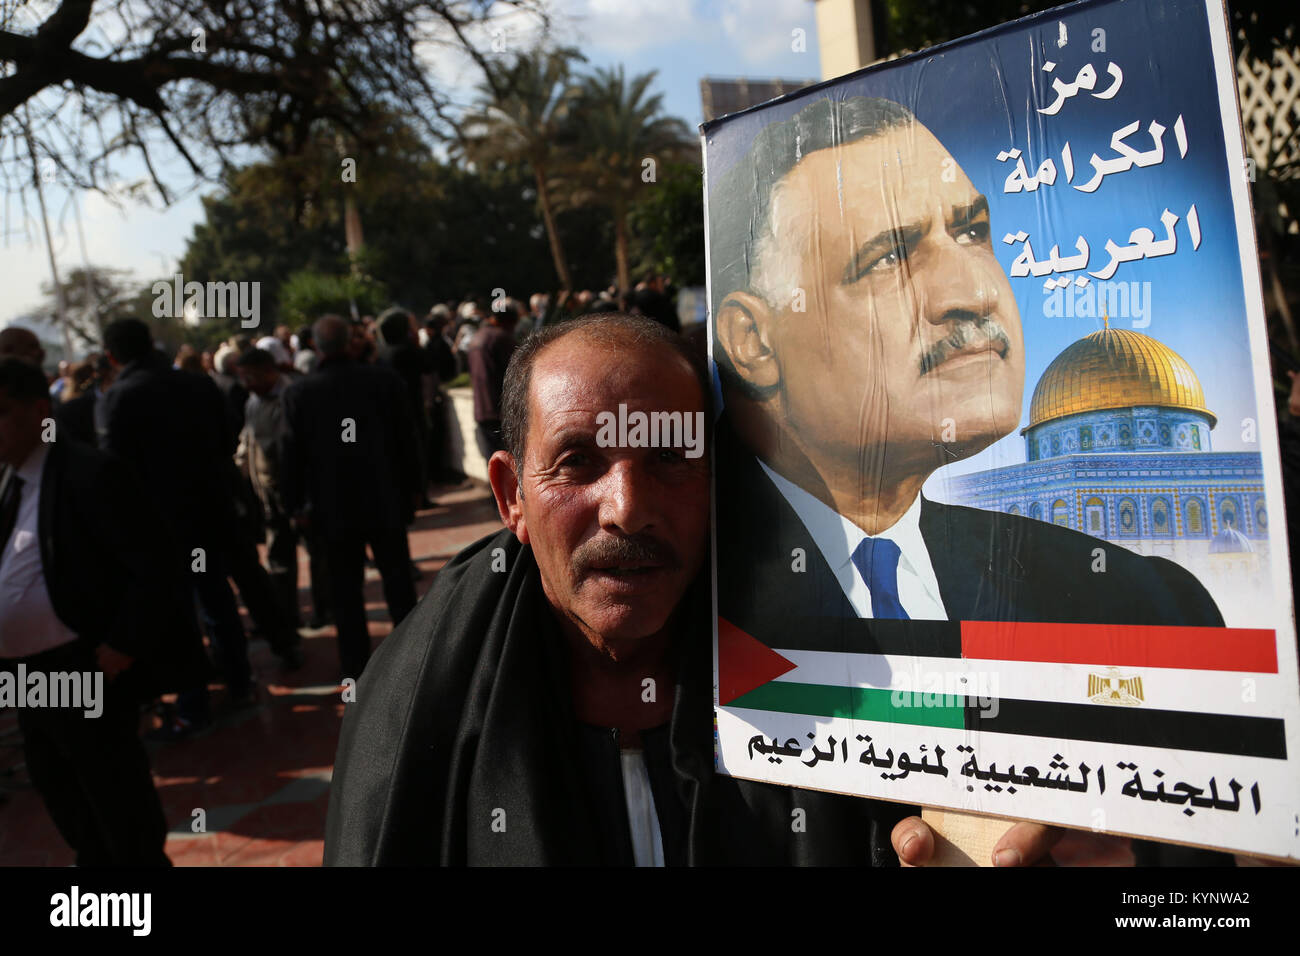 Cairo, Egypt. 15th Jan, 2018. An Egyptian attends the birth centennial celebration of Egypt's late nationalist - Stock Image